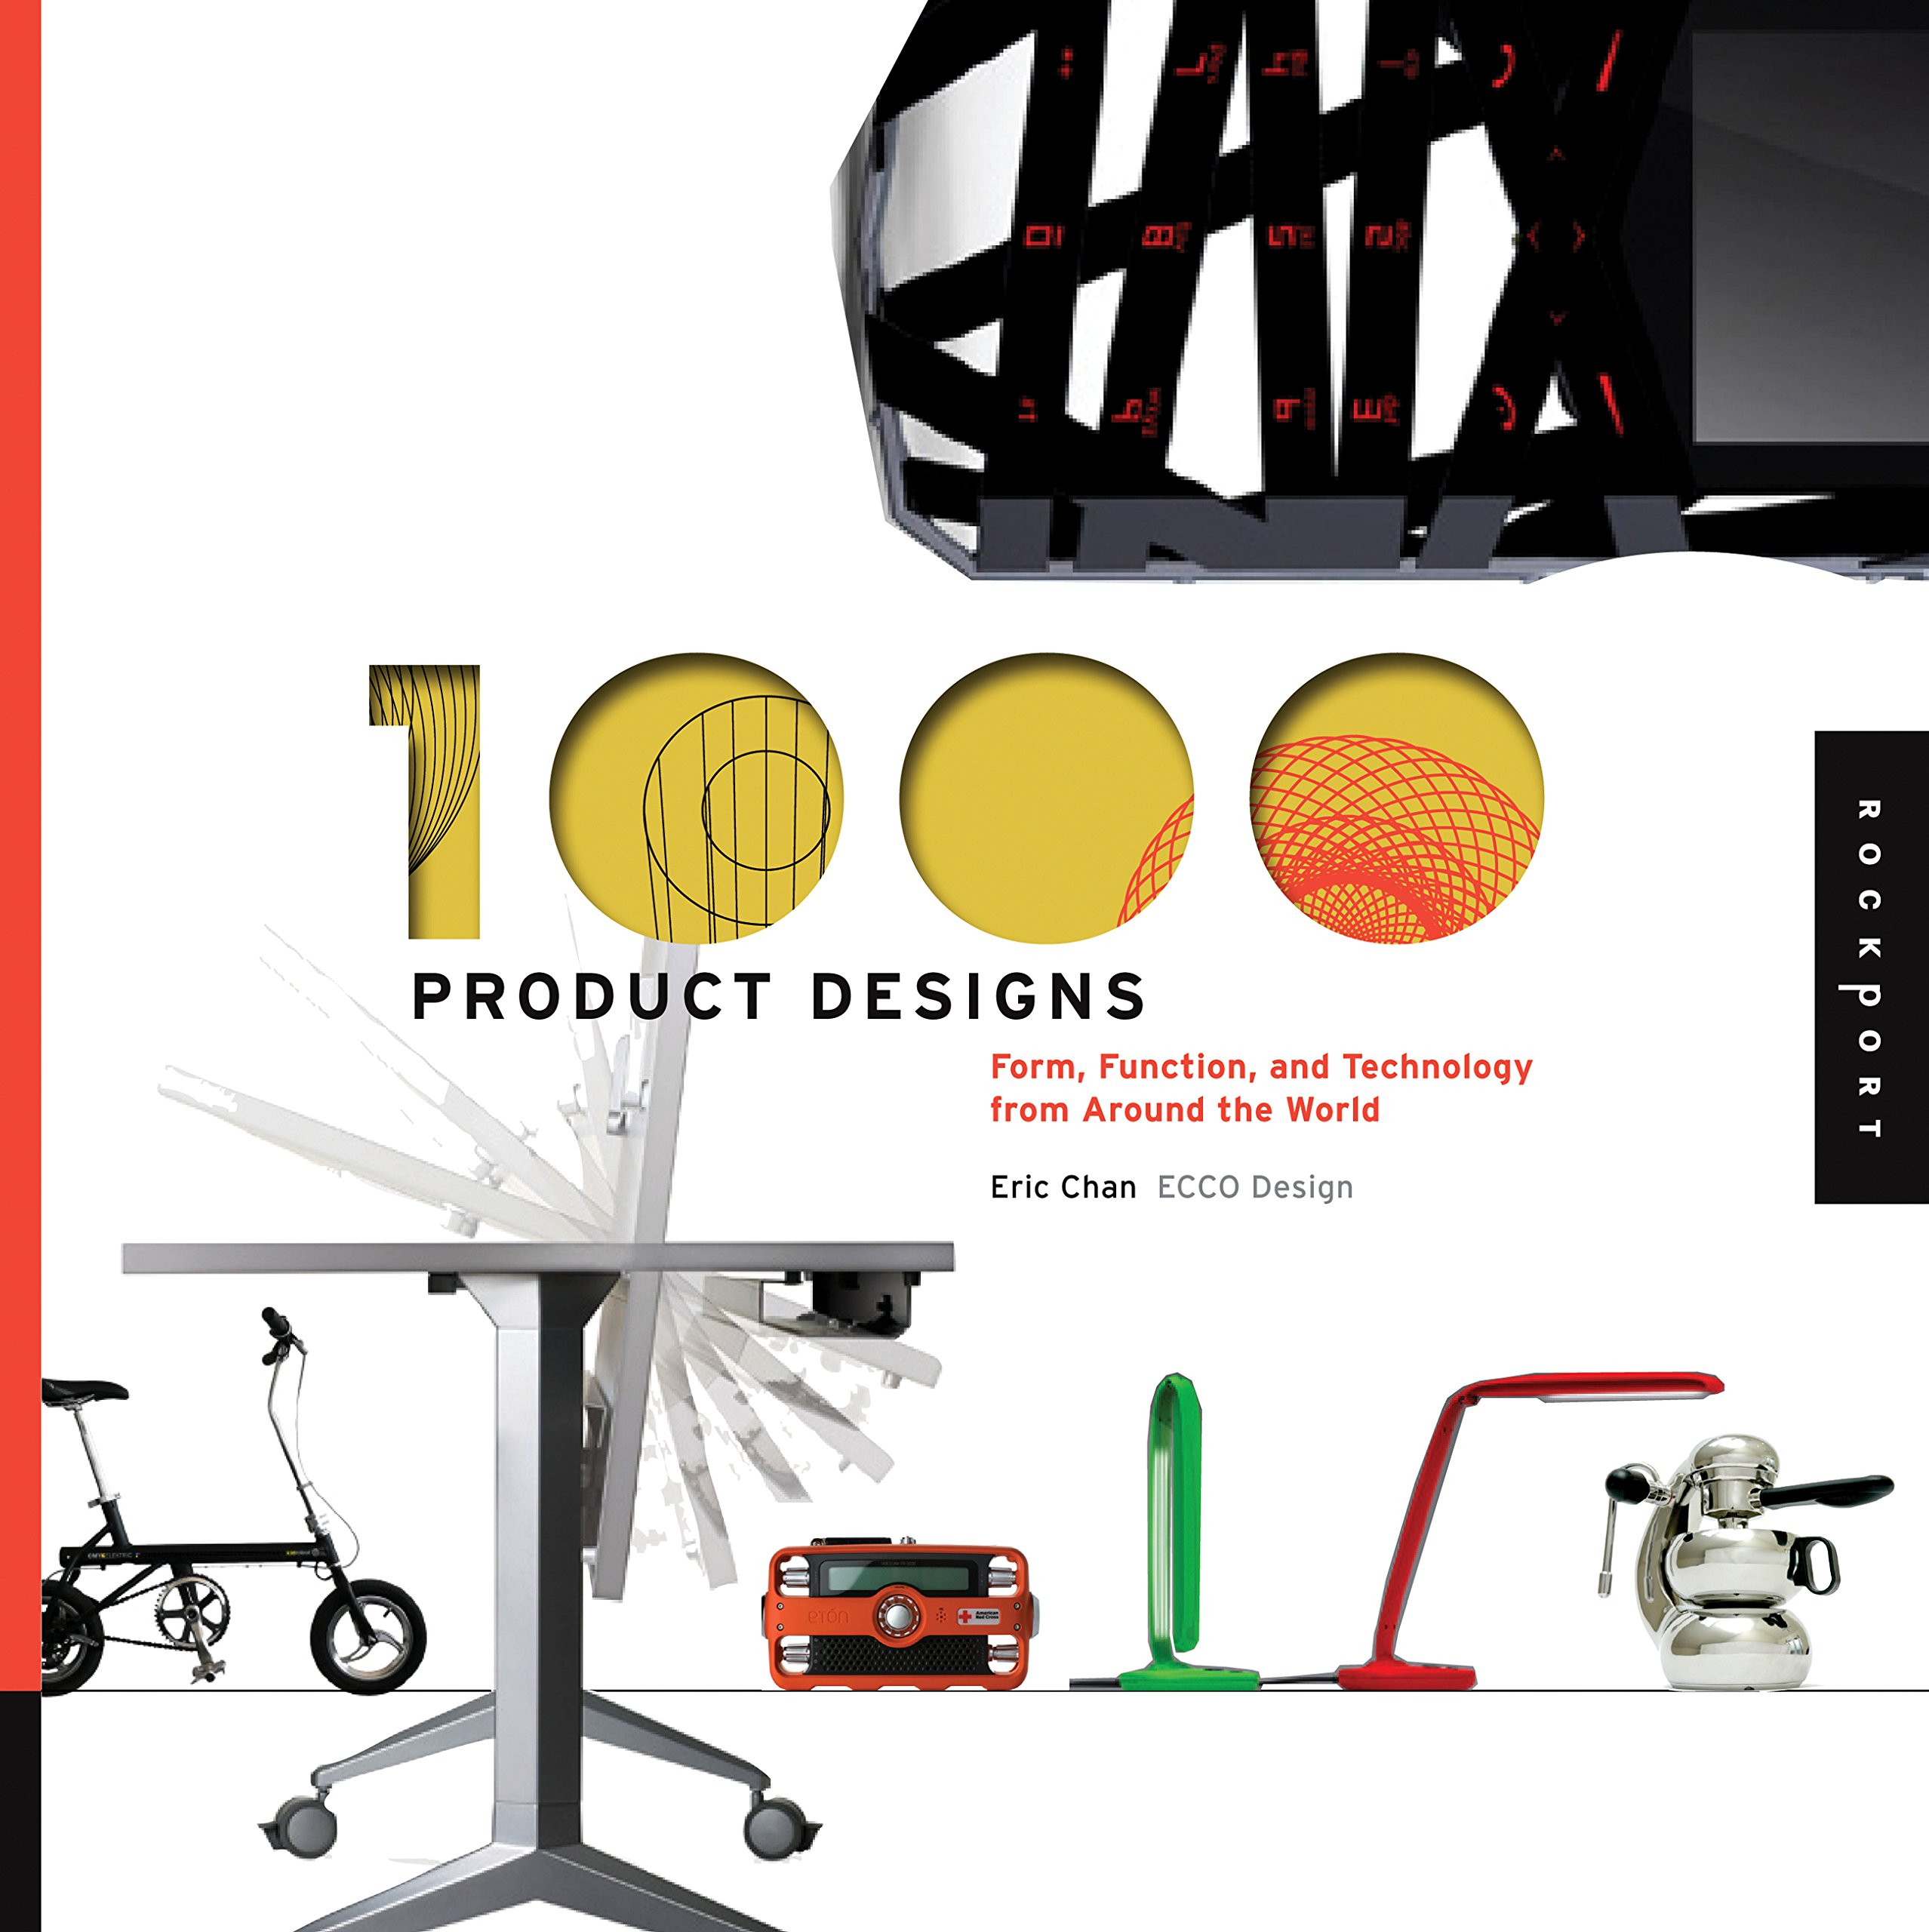 Download 1,000 Product Designs: Form, Function, and Technology from Around the World (1000 Series) ebook